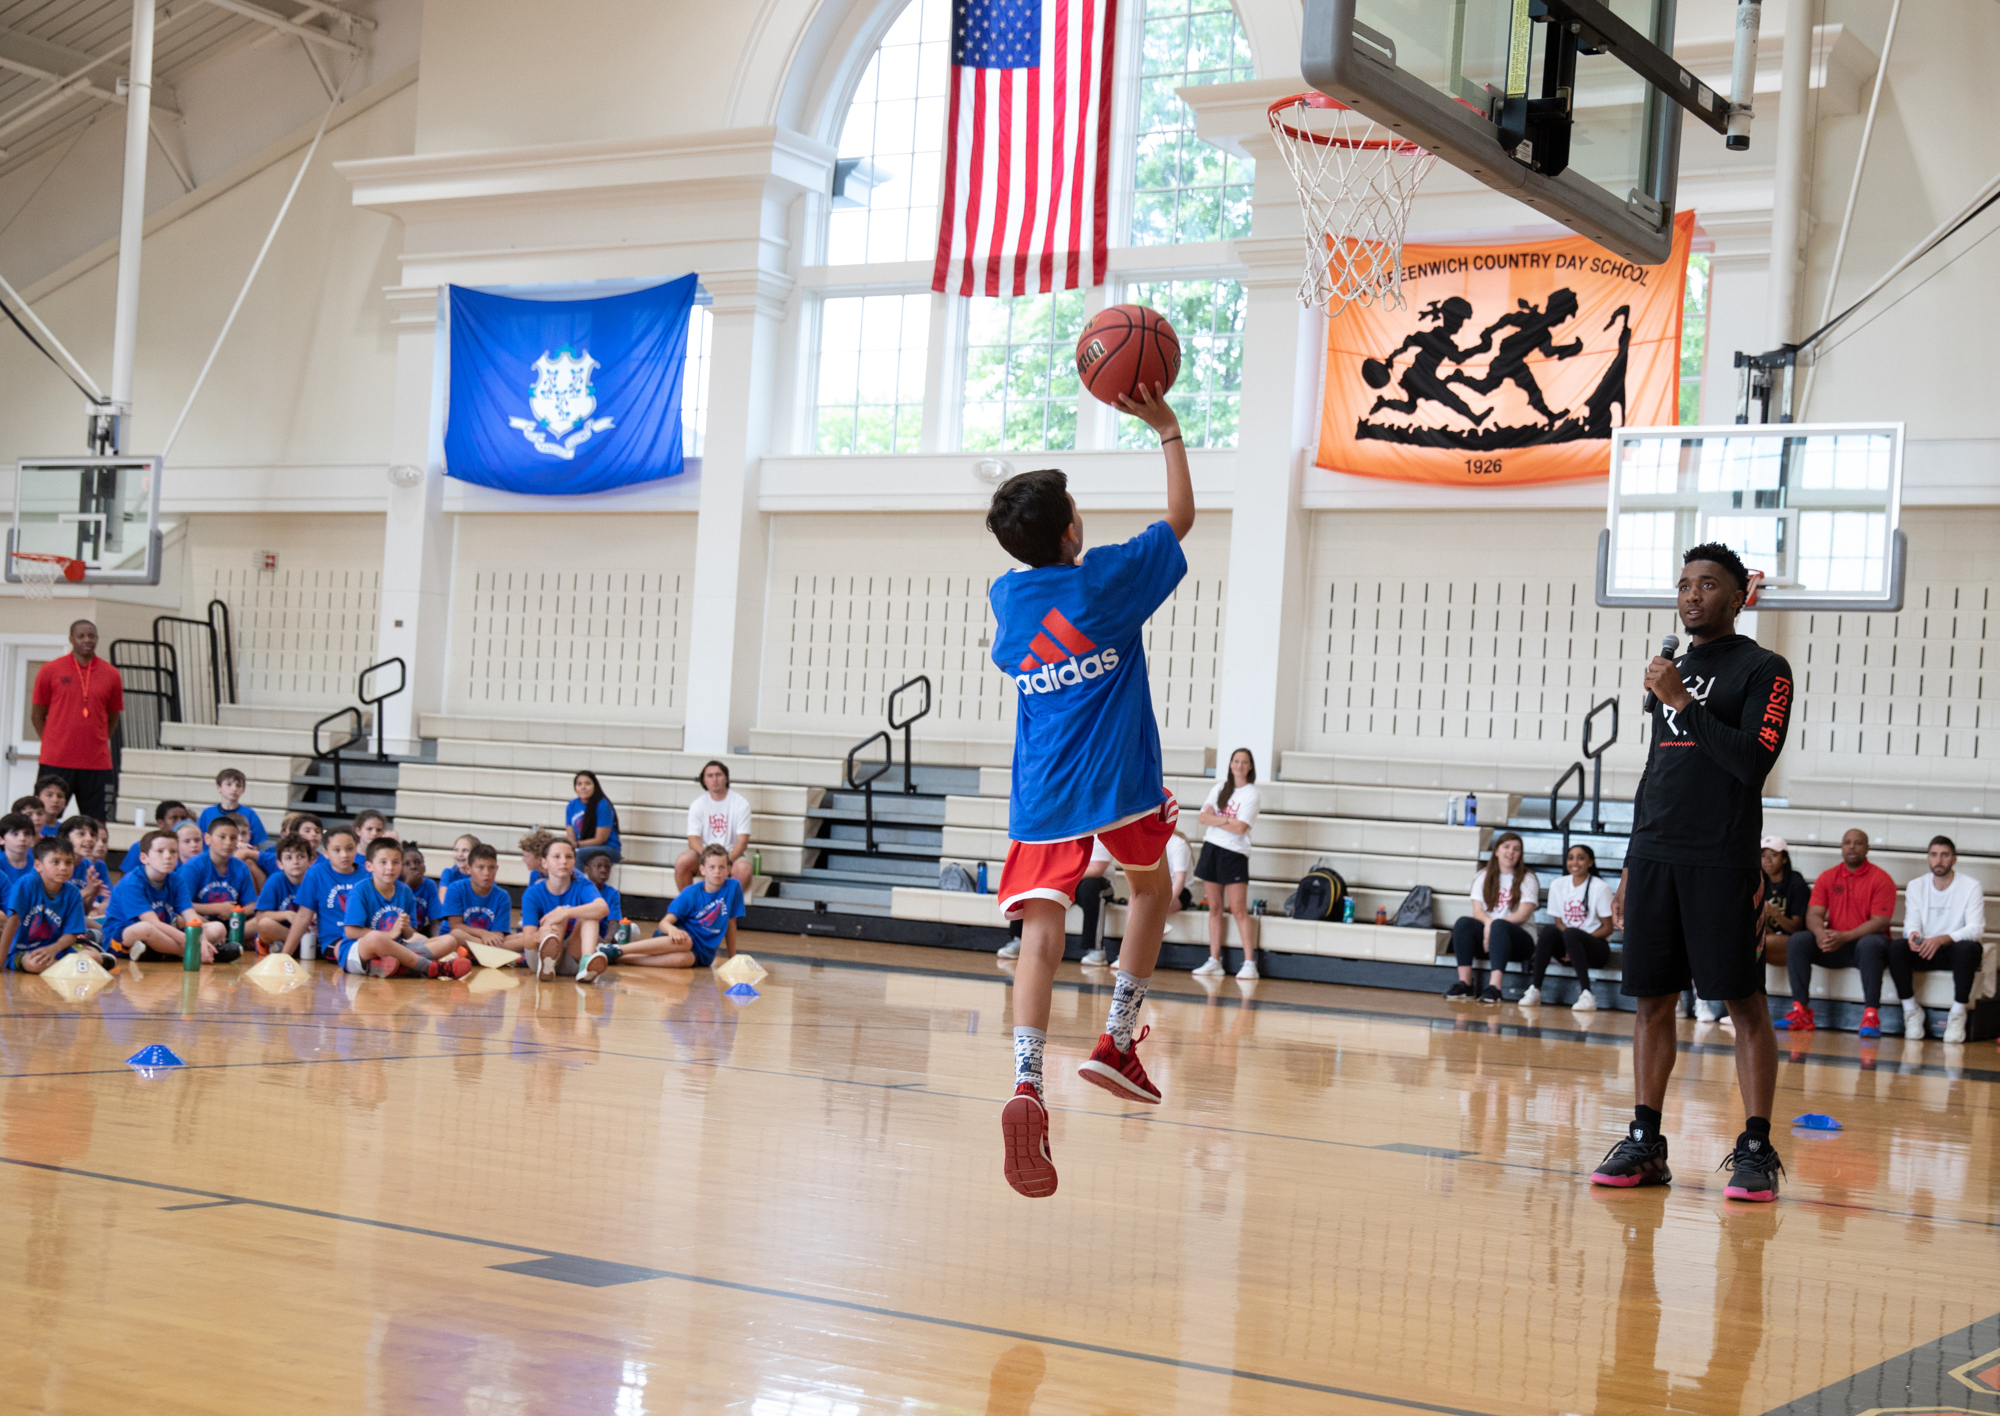 190601-donovan-mitchell-basketball-camp-grades1-4-WH-0643 copy copy.jpg